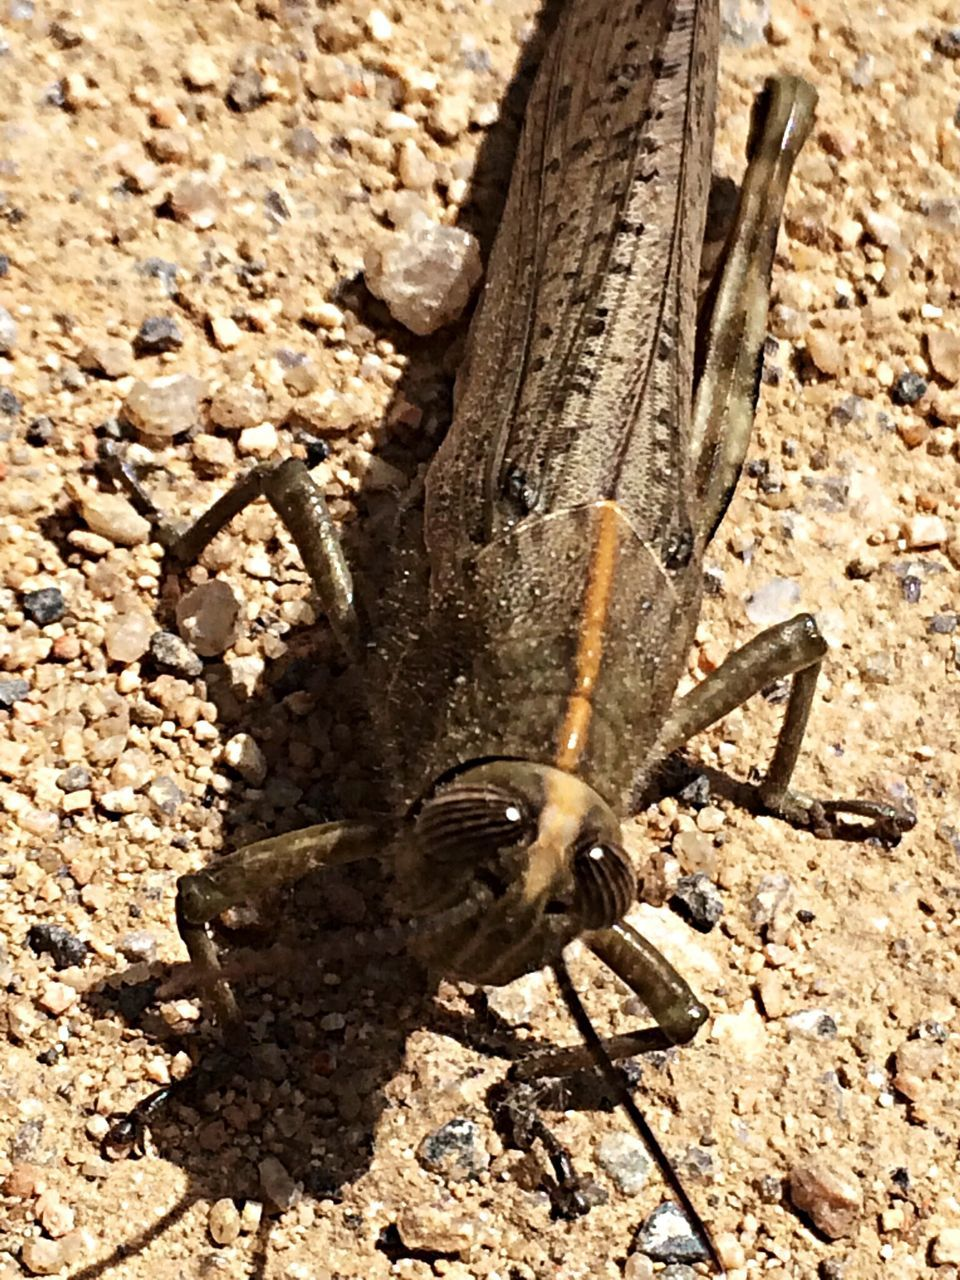 Close-Up Of Insect On Ground